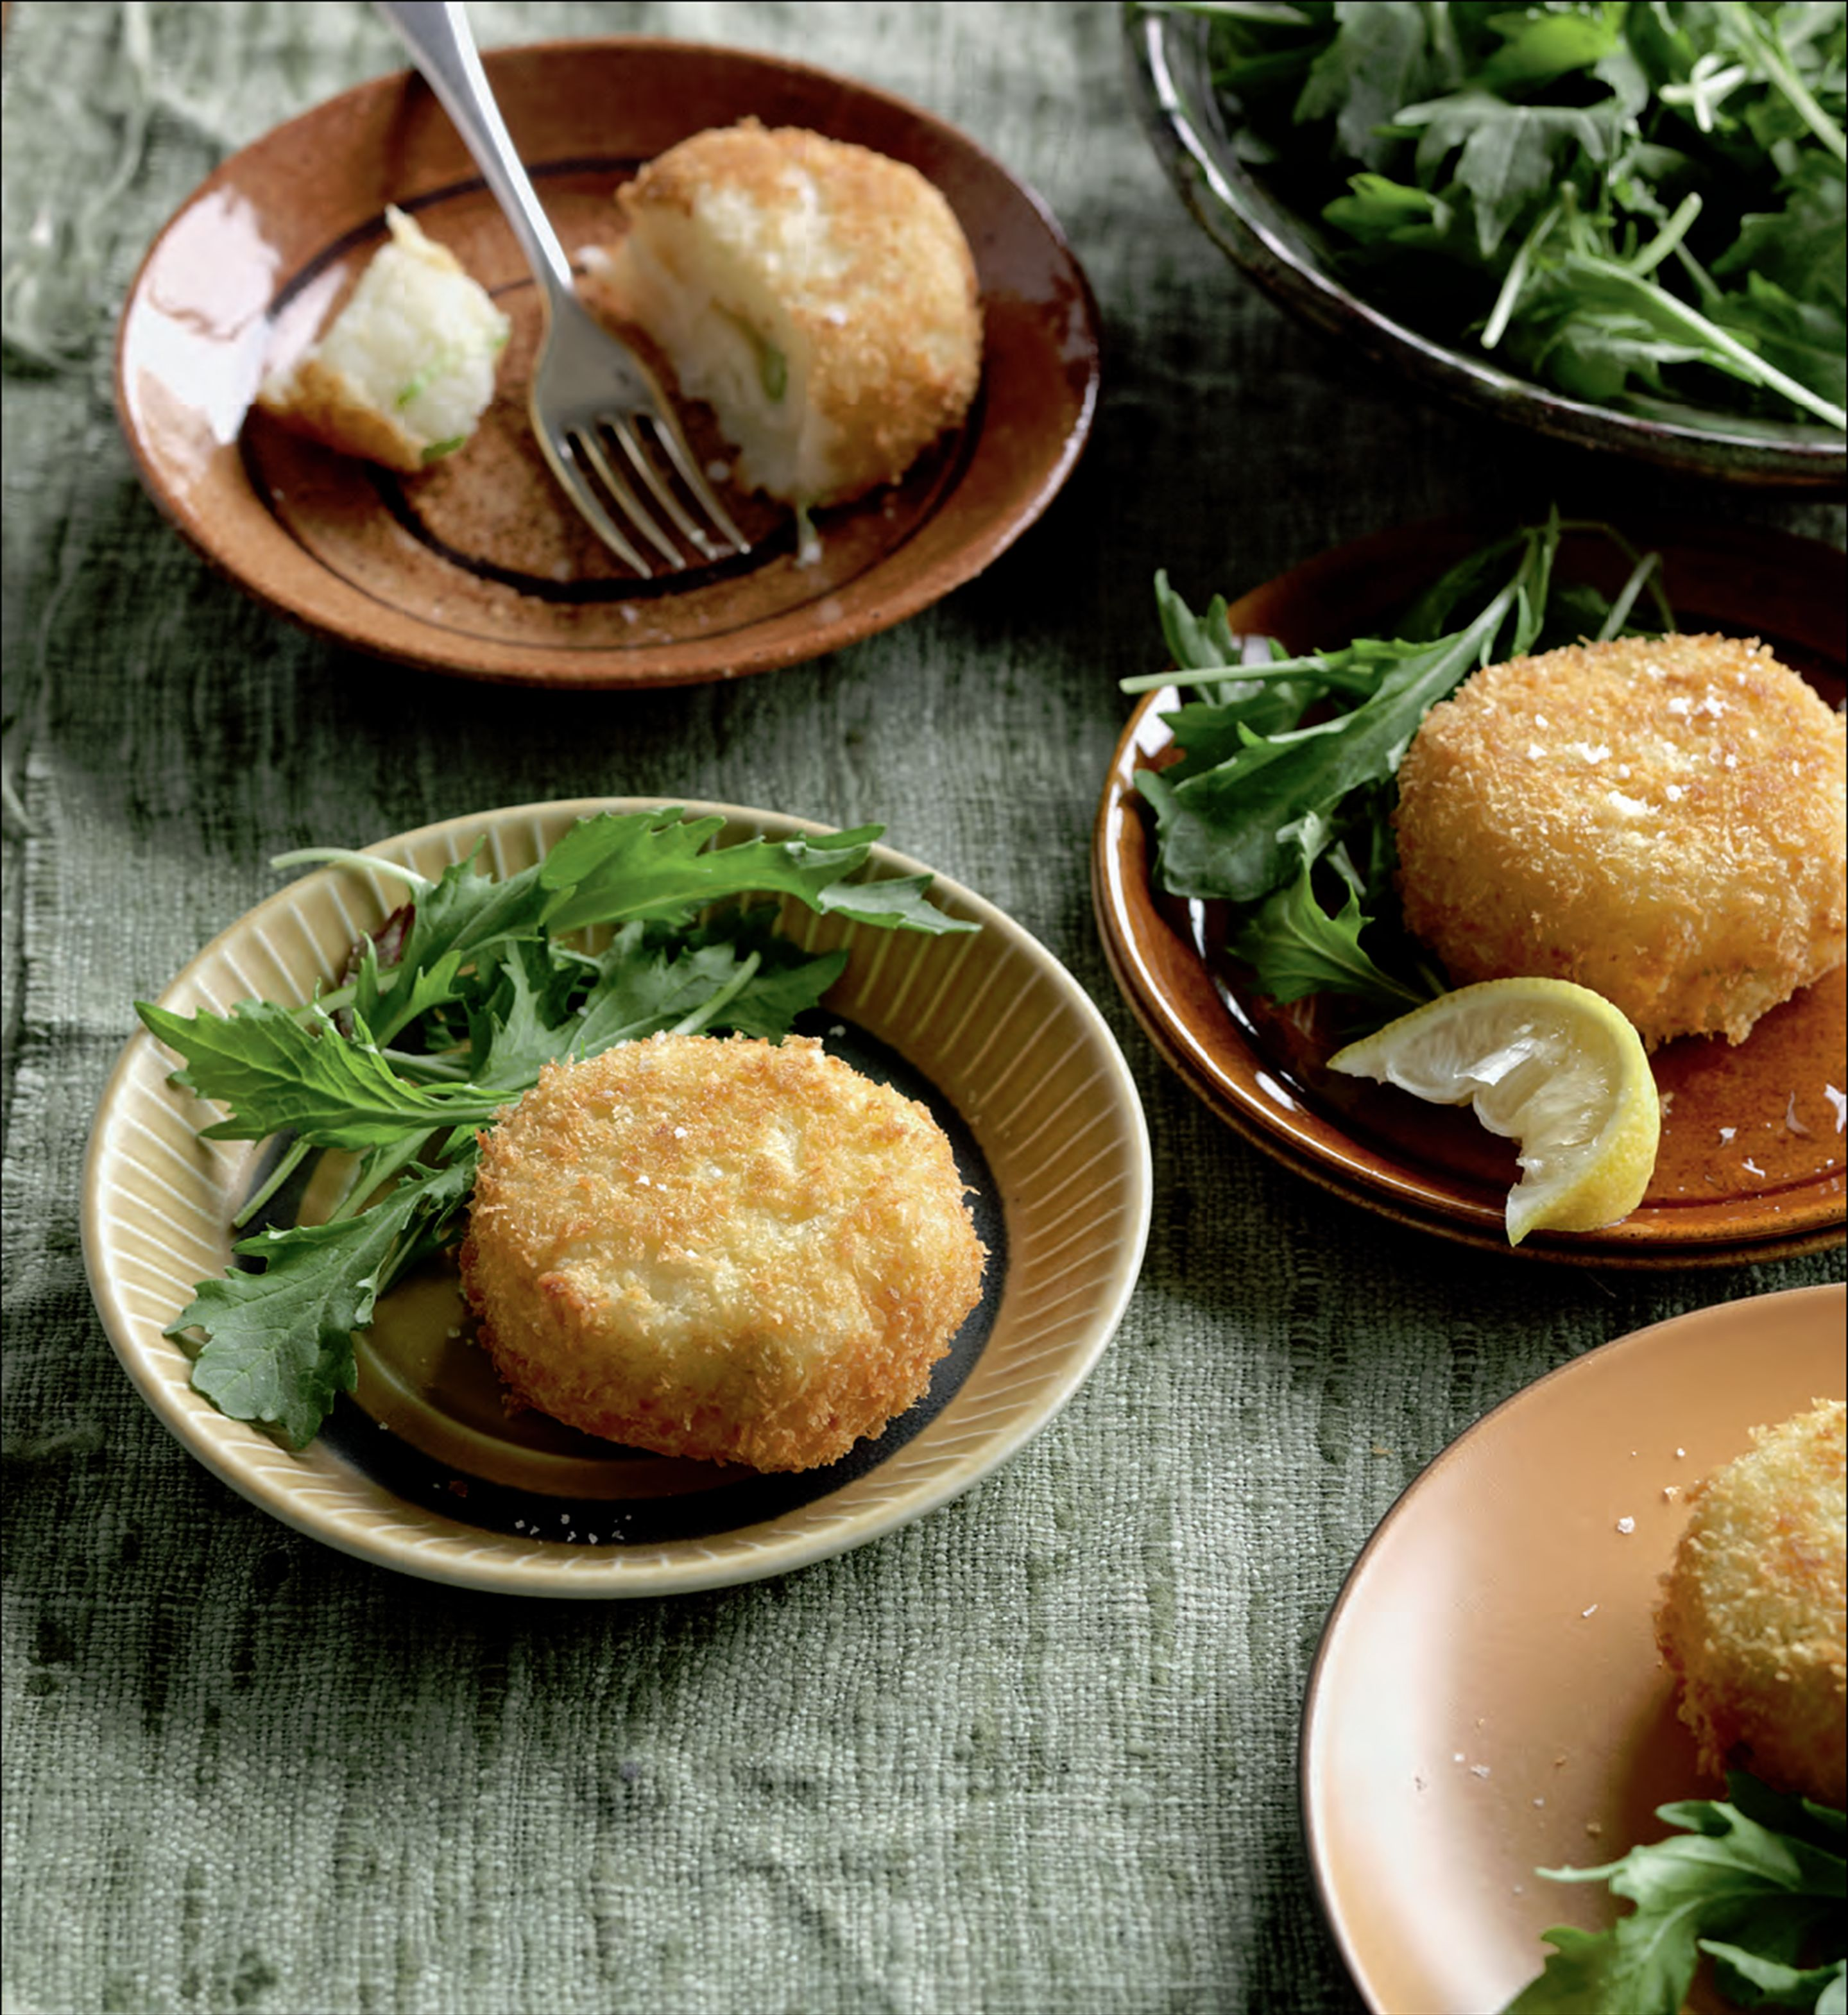 Potato croquettes